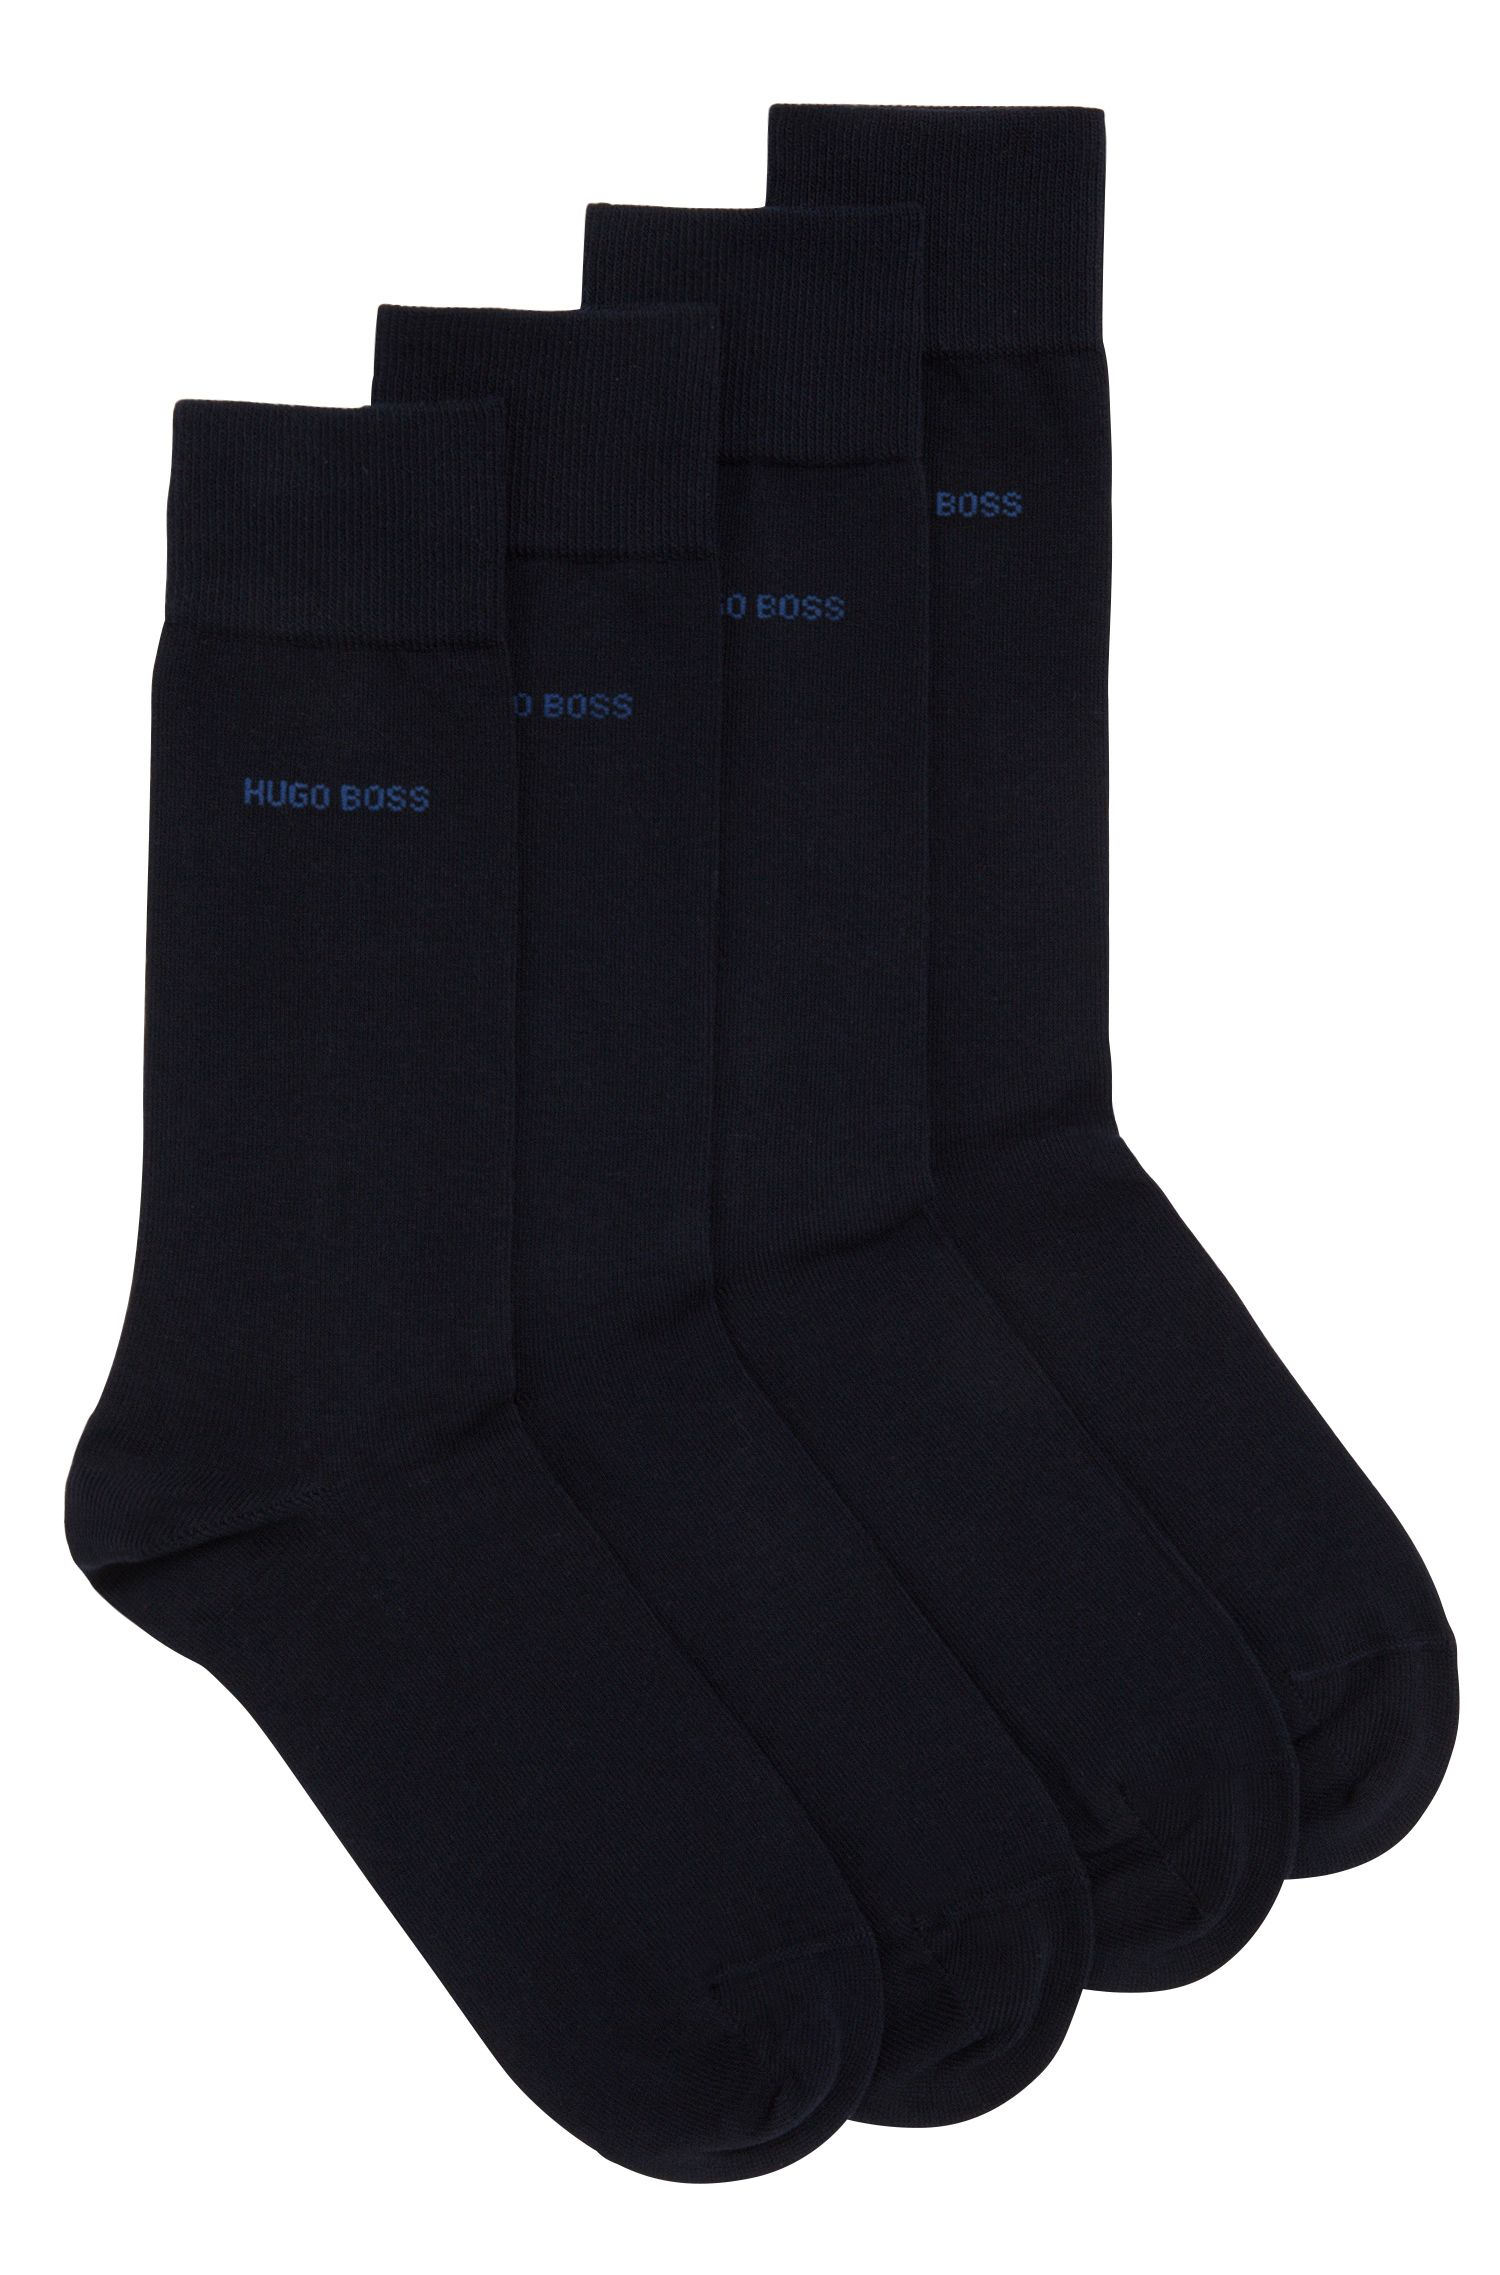 Two pack of regular-length cotton blend socks by BOSS Menswear